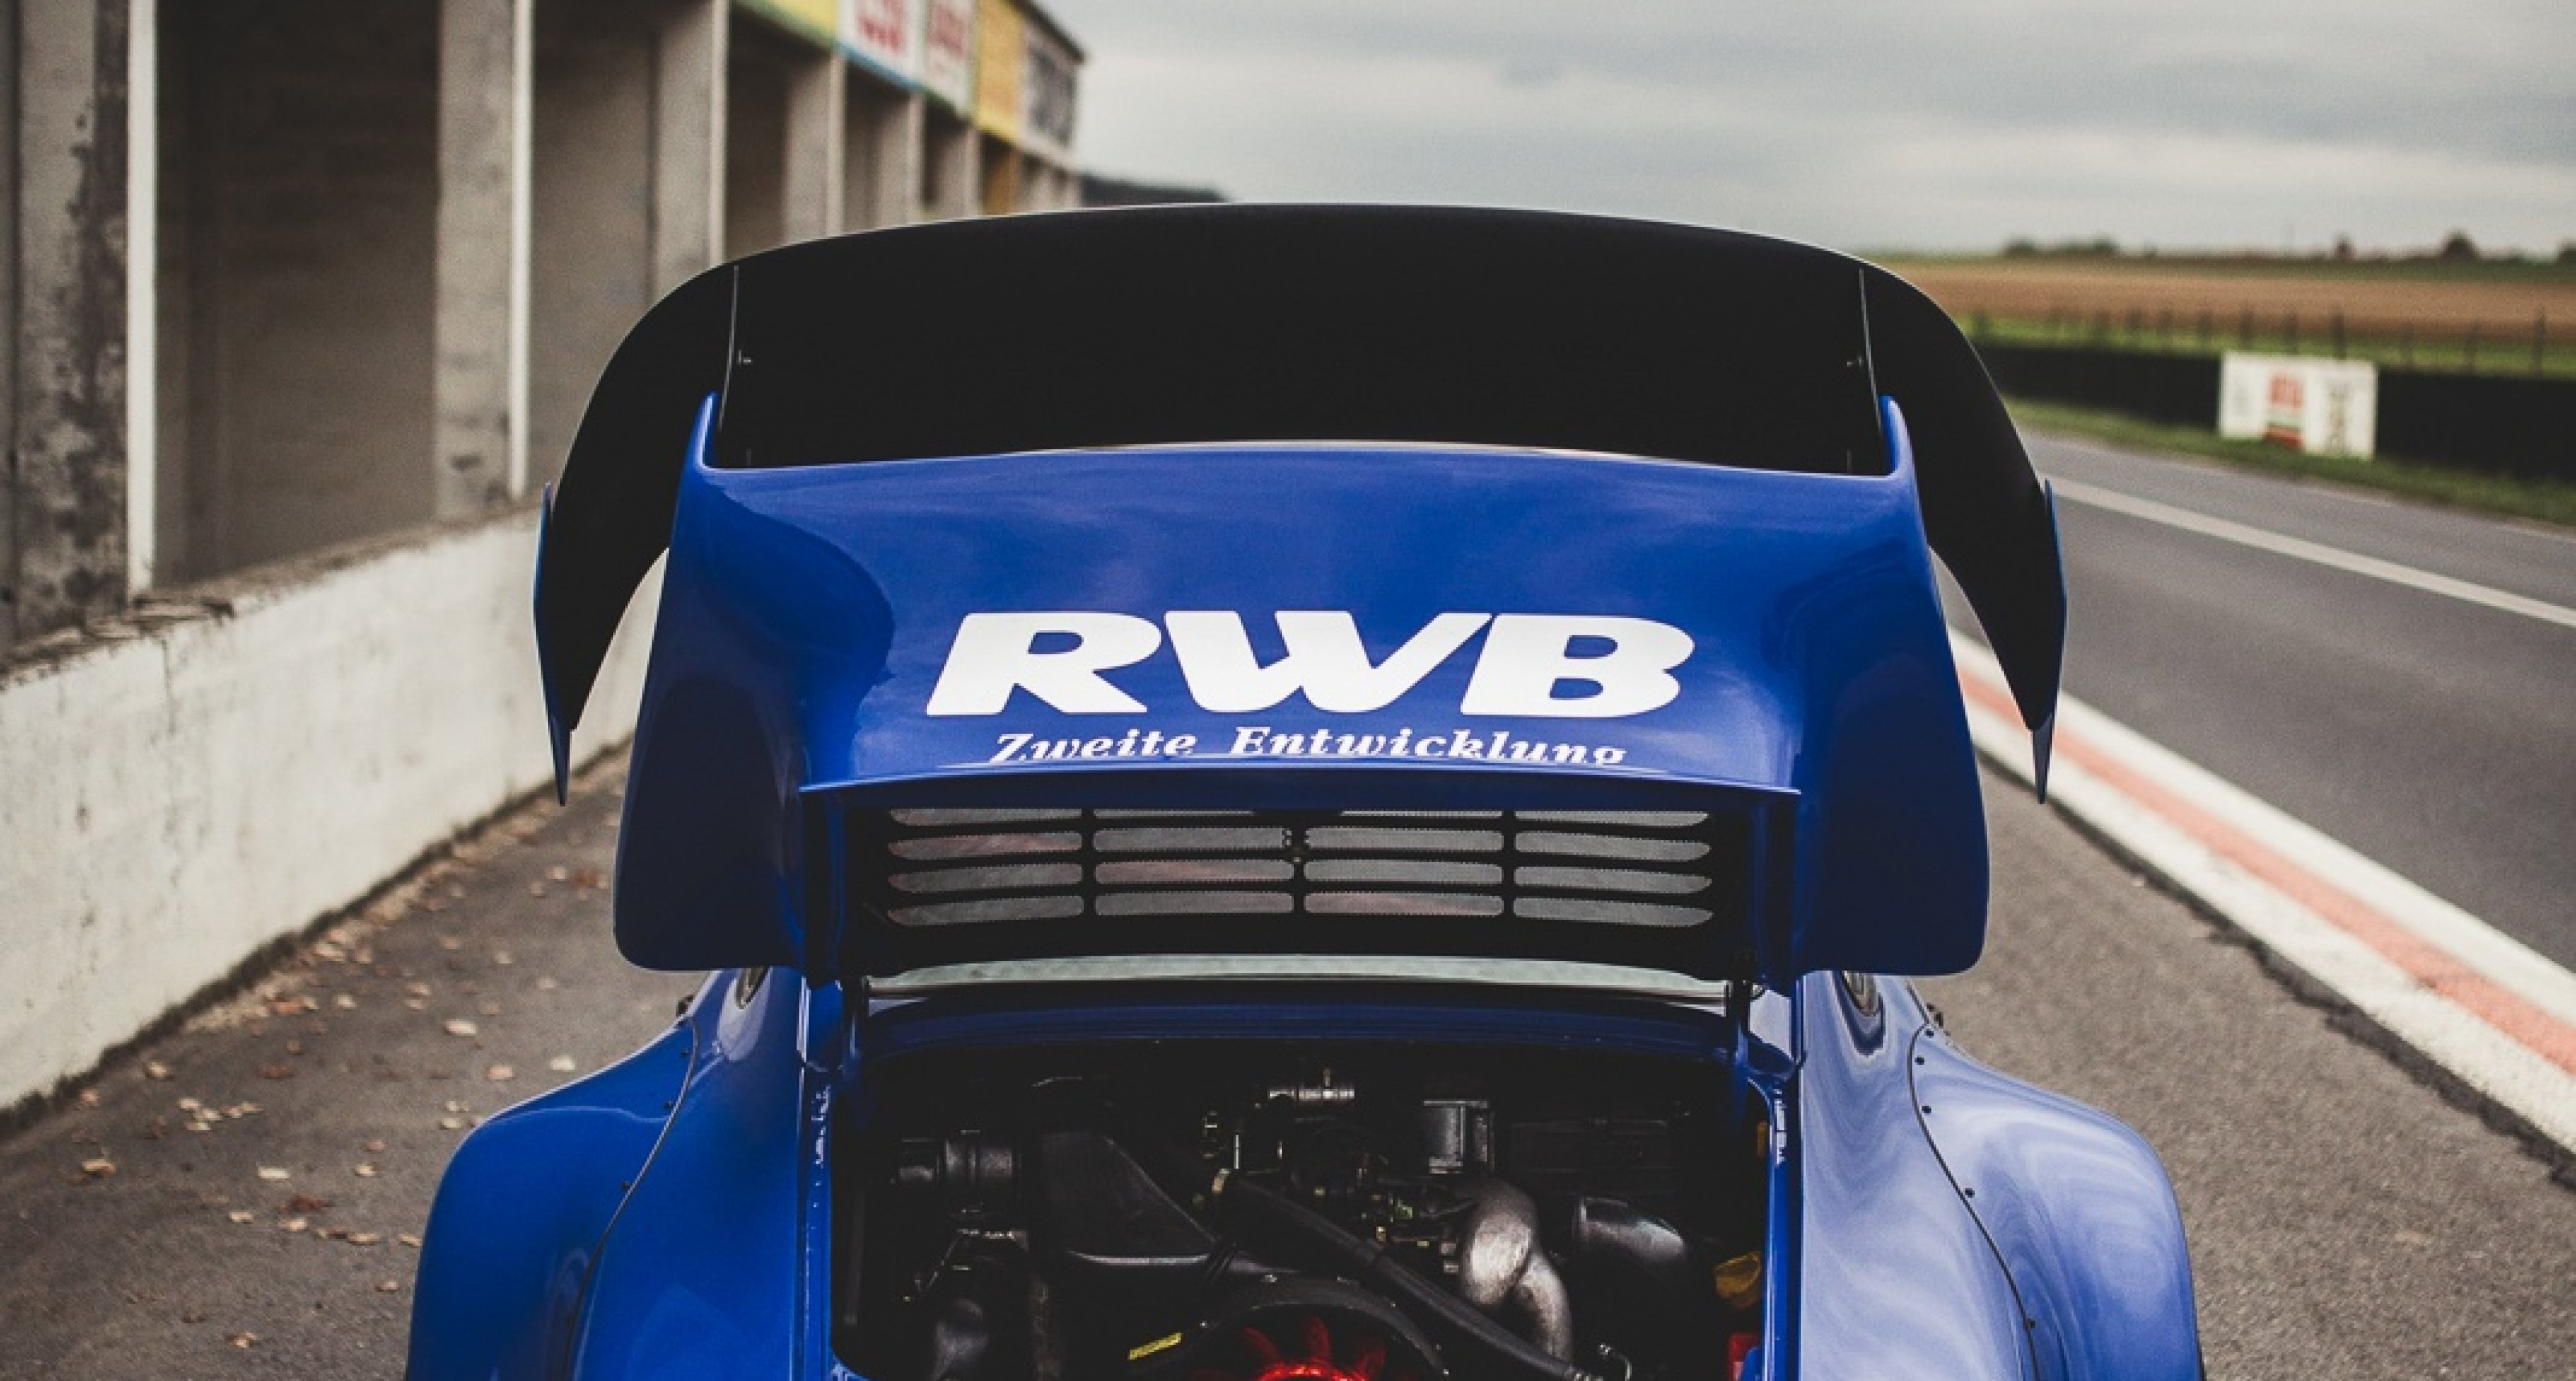 From lager beer to craft Champagne with France's first RWB